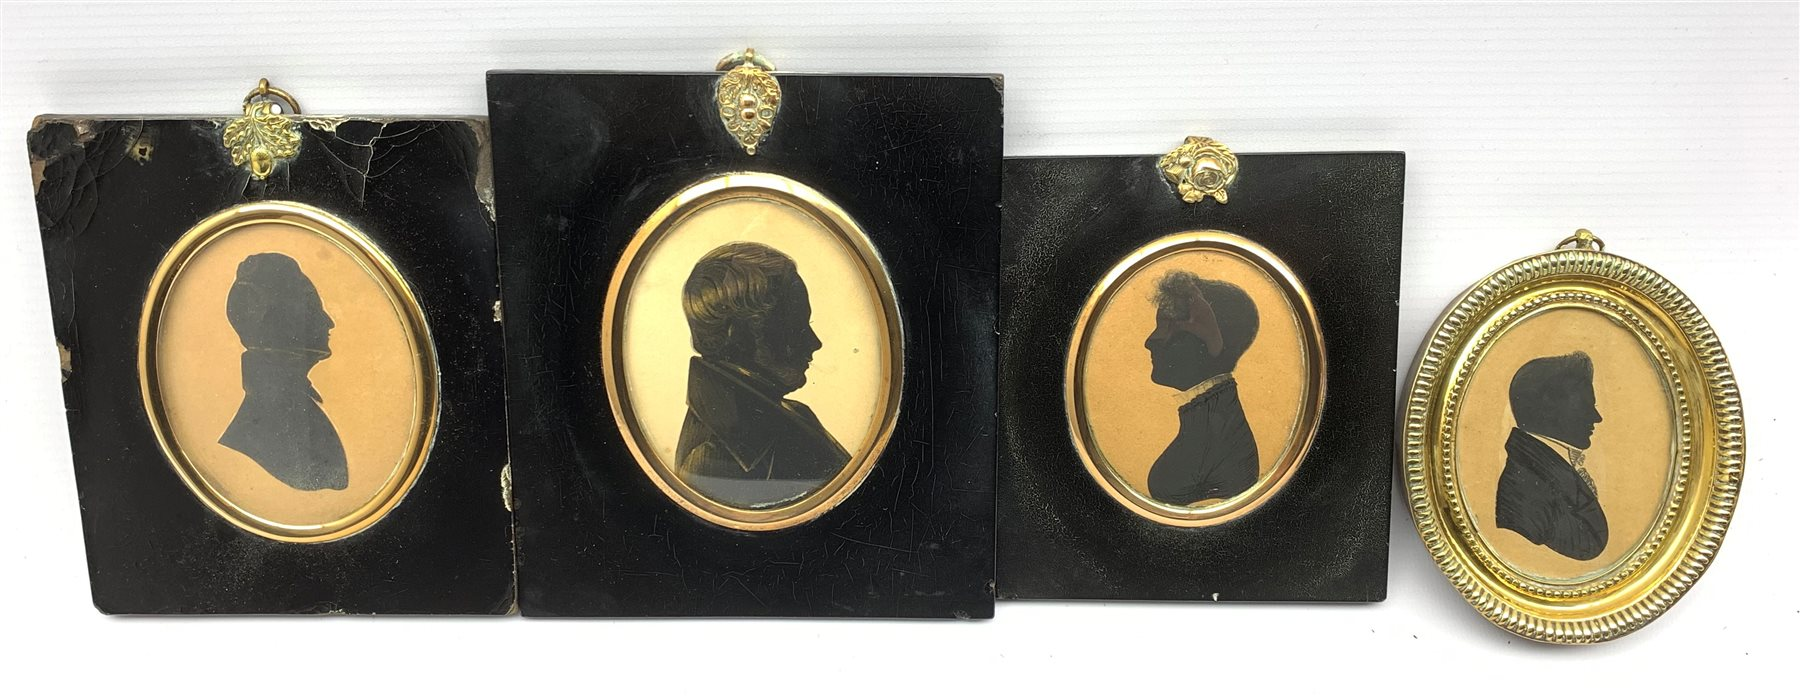 19th Century silhouette profile portrait of a gentleman with gilt highlights and inscribed to the re